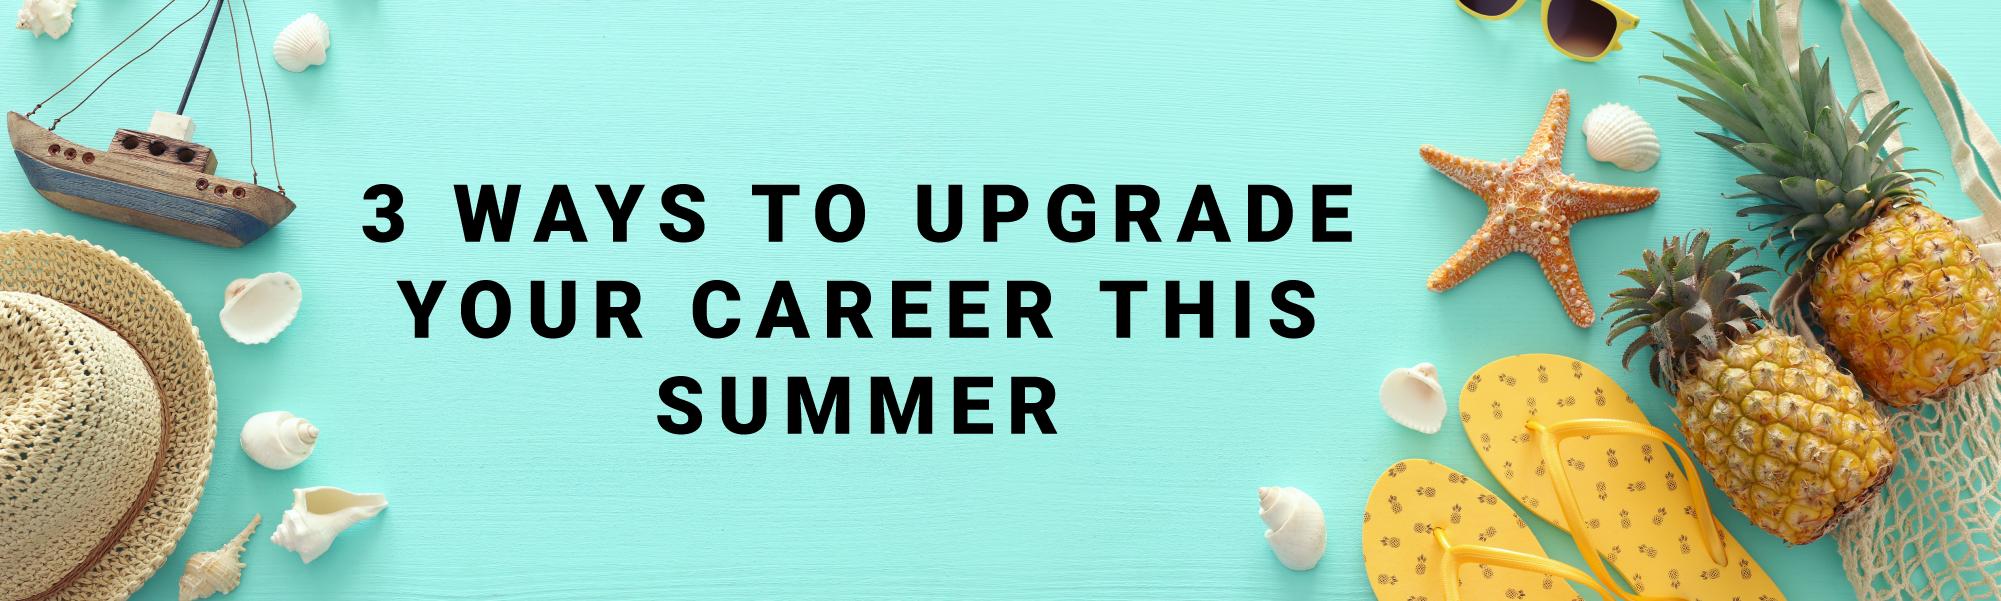 """Banner reading """"3 ways to upgrade your career this summer"""""""